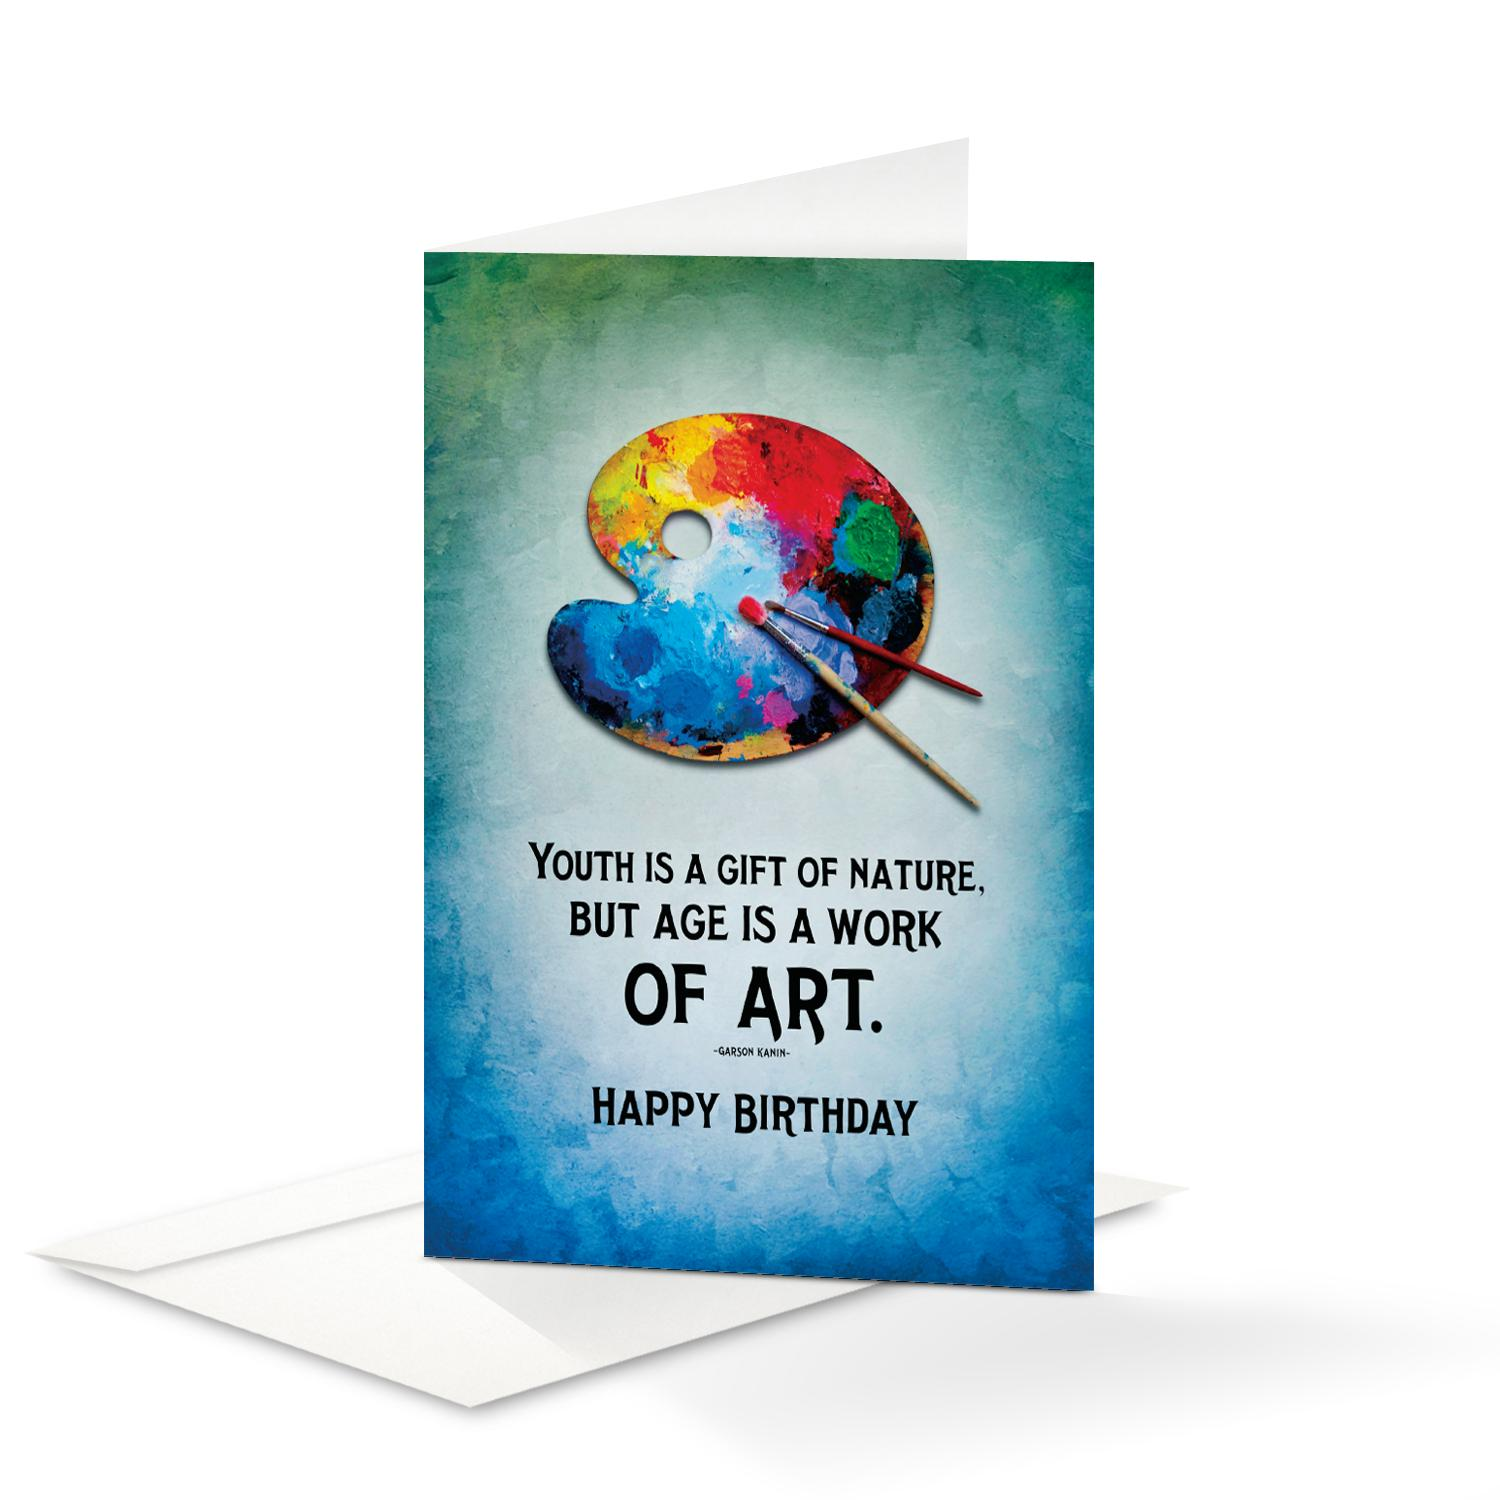 Work Birthday Cards wild west party invitations free e postcards – Art for Birthday Cards